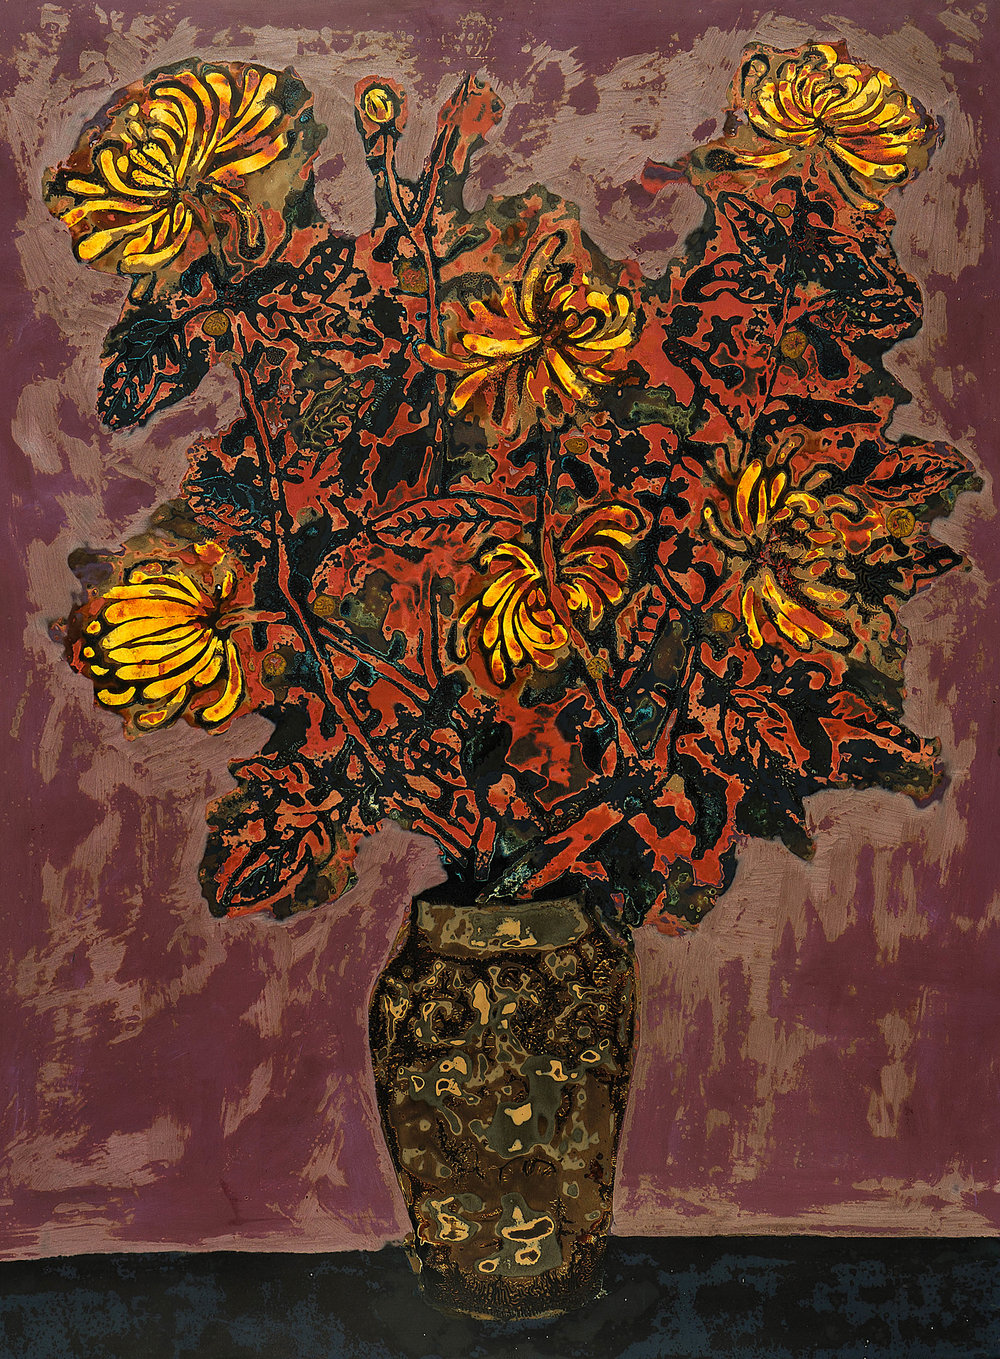 Chrysanthemum , 2016, Lacquer on wood panel, 80 x 60 cm